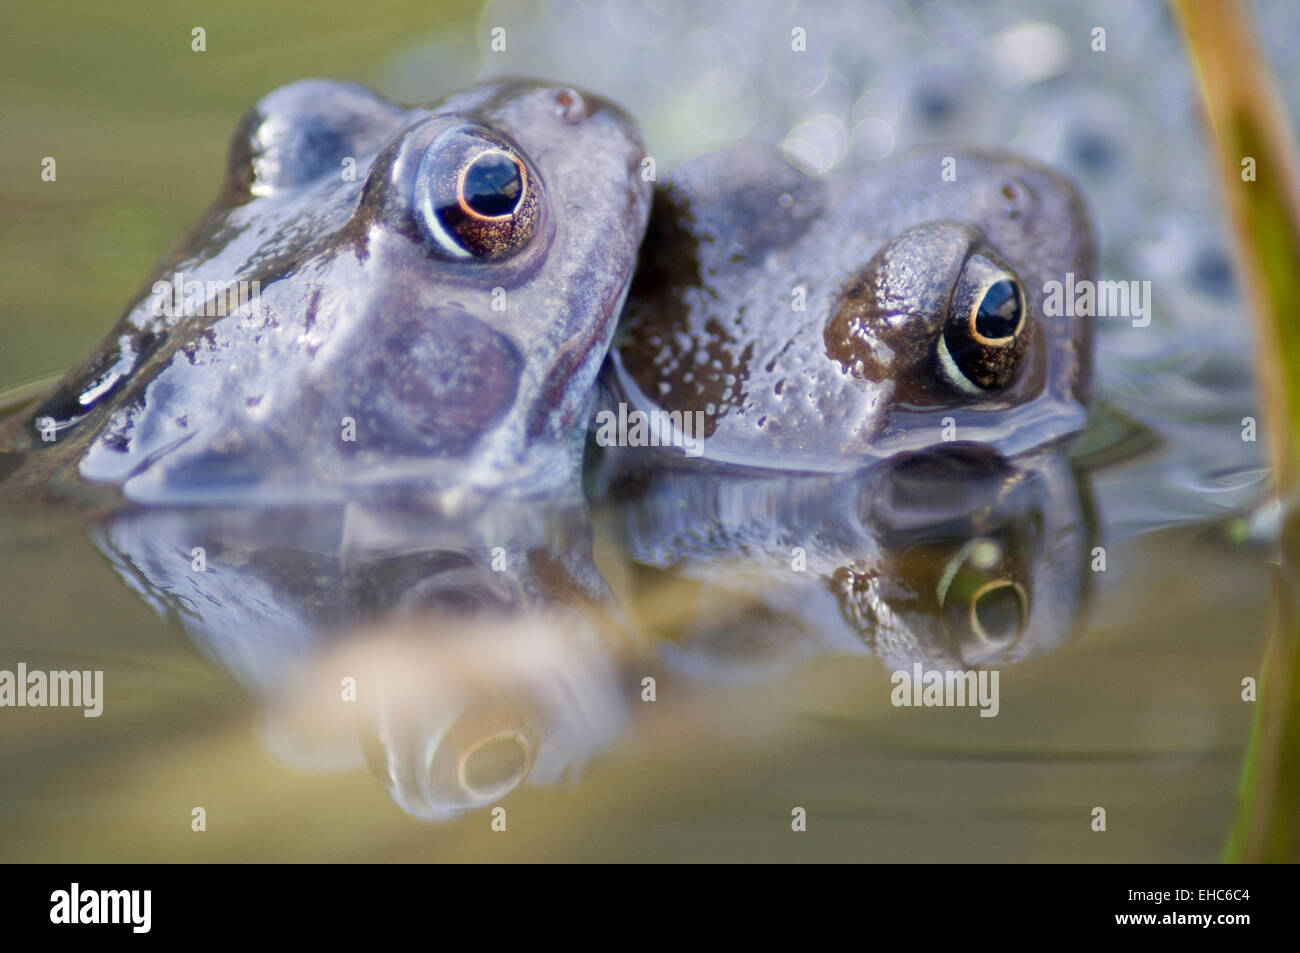 A pair of British Common Frogs (Rana temporaria) spawning in a garden pond in East Yorkshire - Stock Image